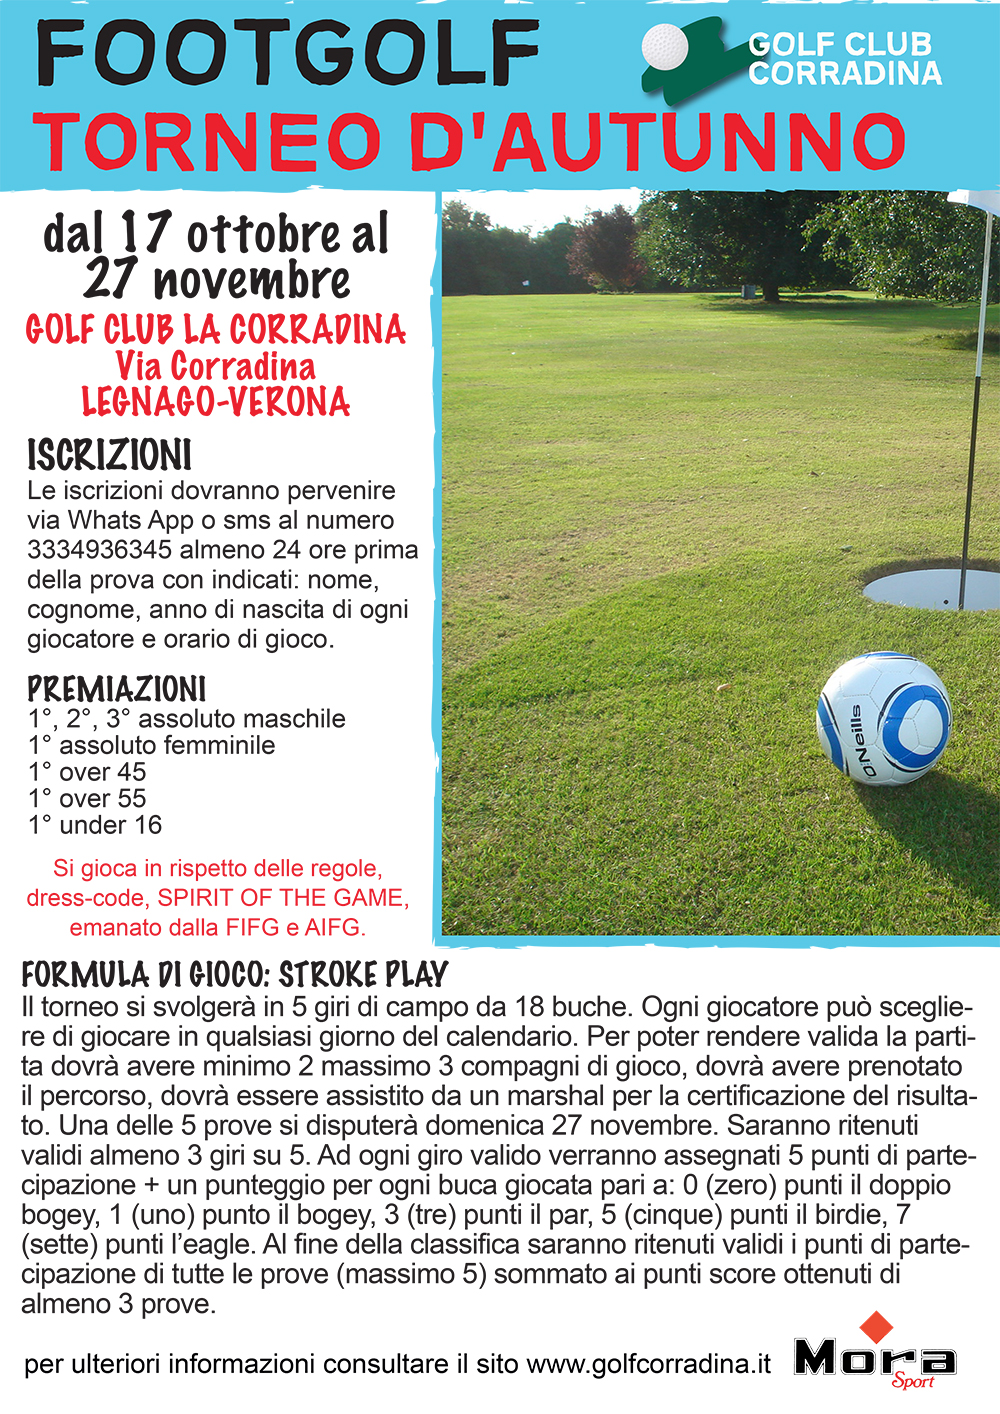 Torneo d'autunno Footgolf